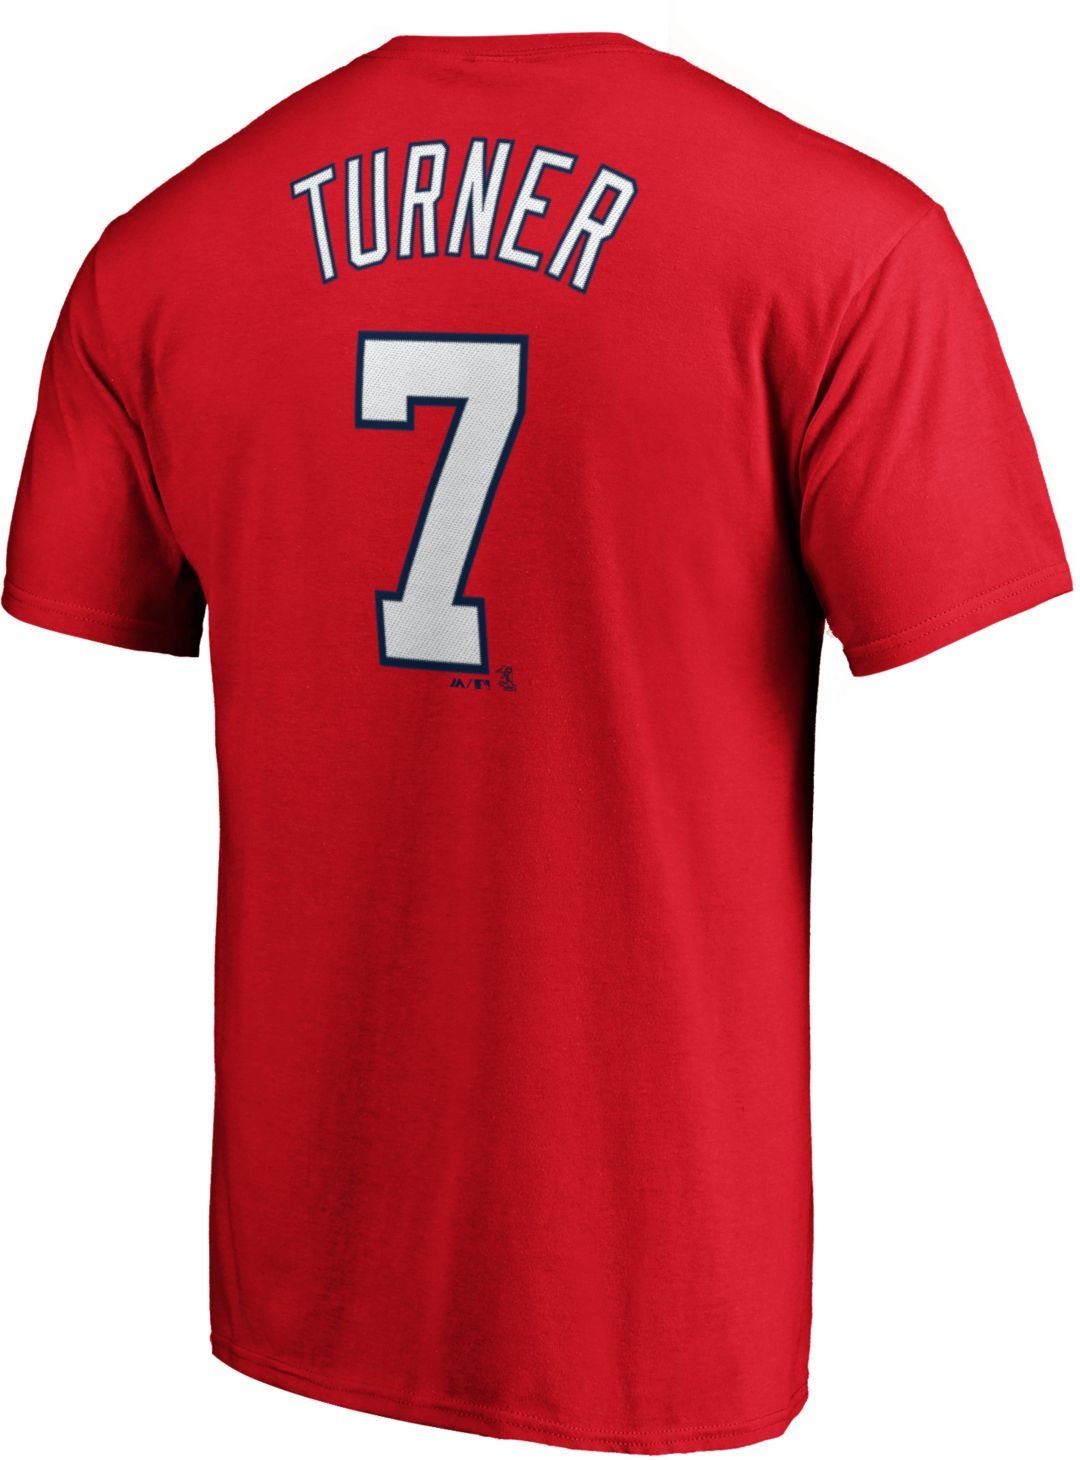 buy popular 925c3 90977 Majestic Men's Washington Nationals Trea Turner #7 Red T-Shirt